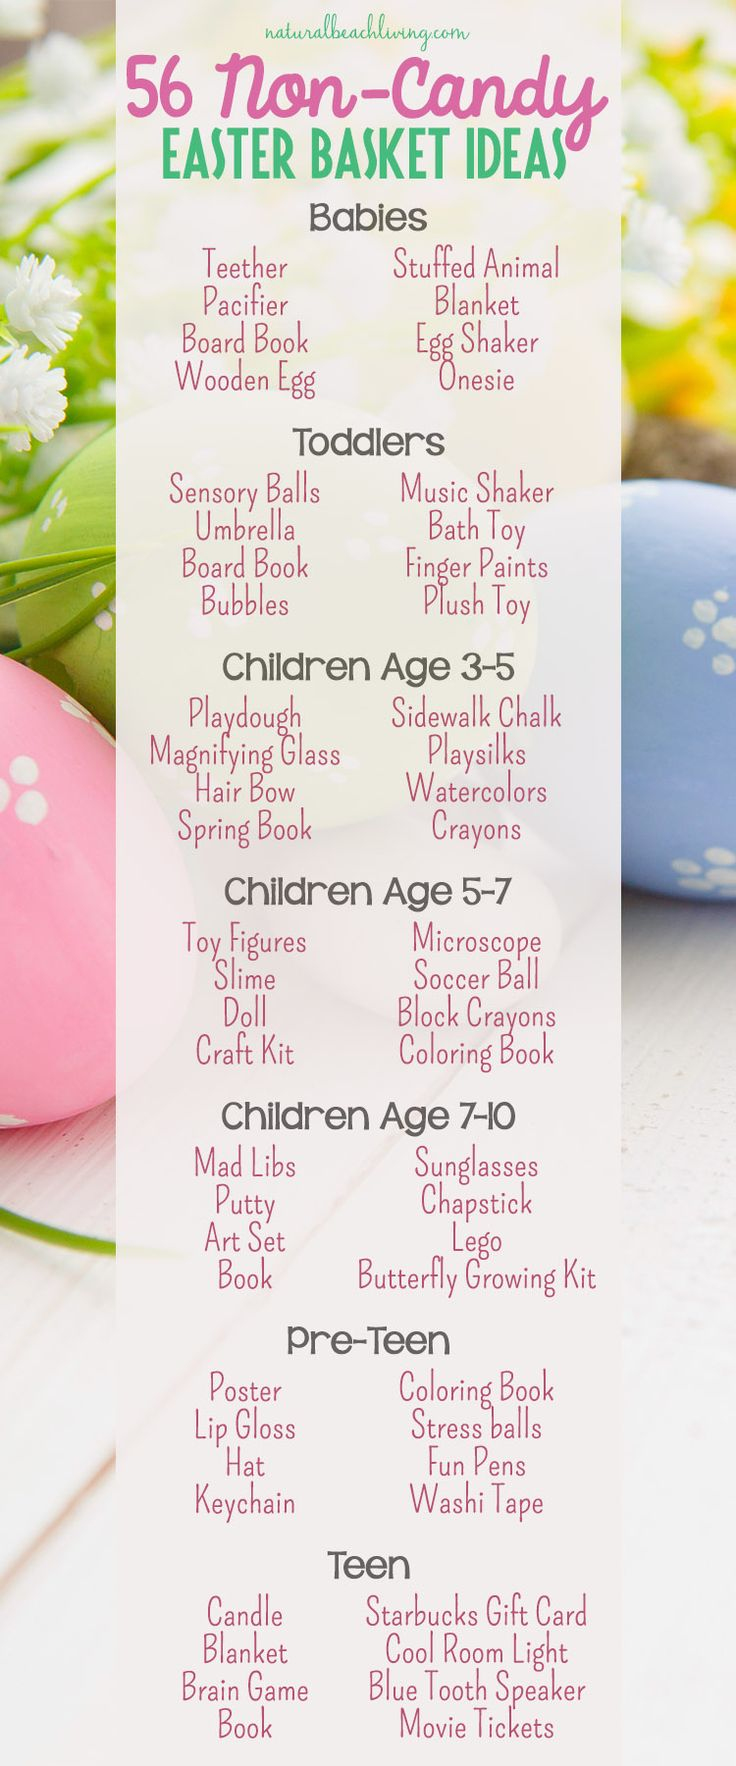 56 Non-Candy Easter Basket Ideas for kids, Budget friendly Easter Baskets, Easter for toddlers, Easter basket ideas for babies, Teen gifts, Non candy ideas via natural beach living